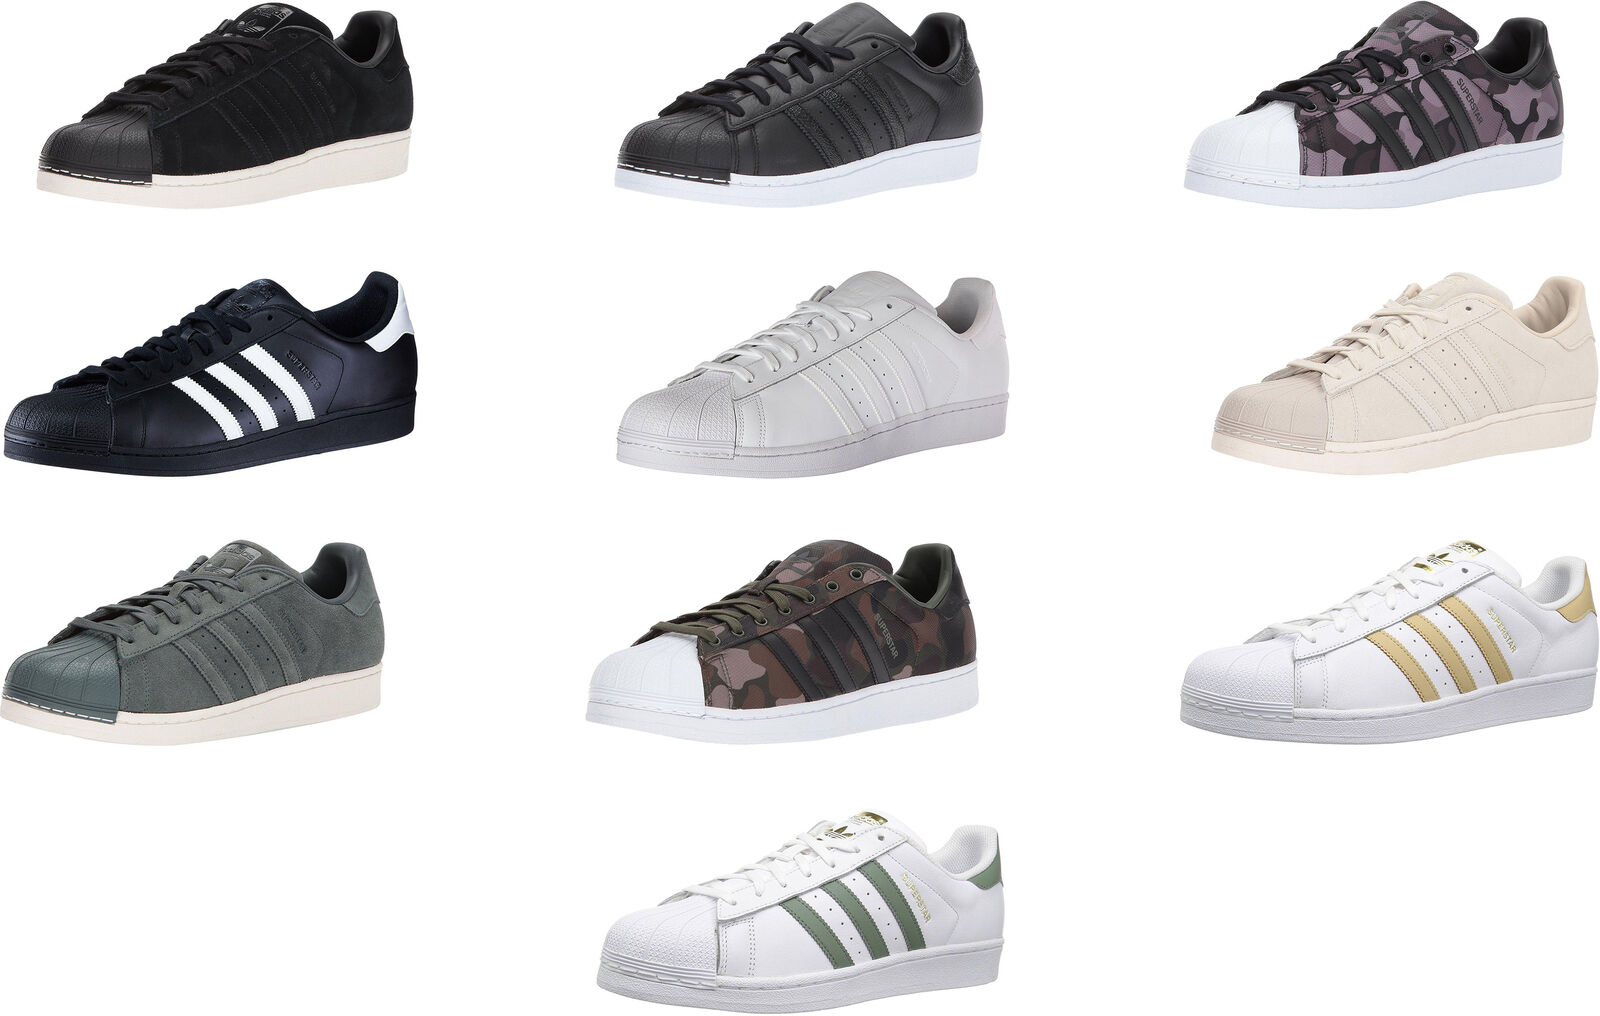 Adidas Originals Men's Superstar Foundation Casual Sneakers, 12 colors